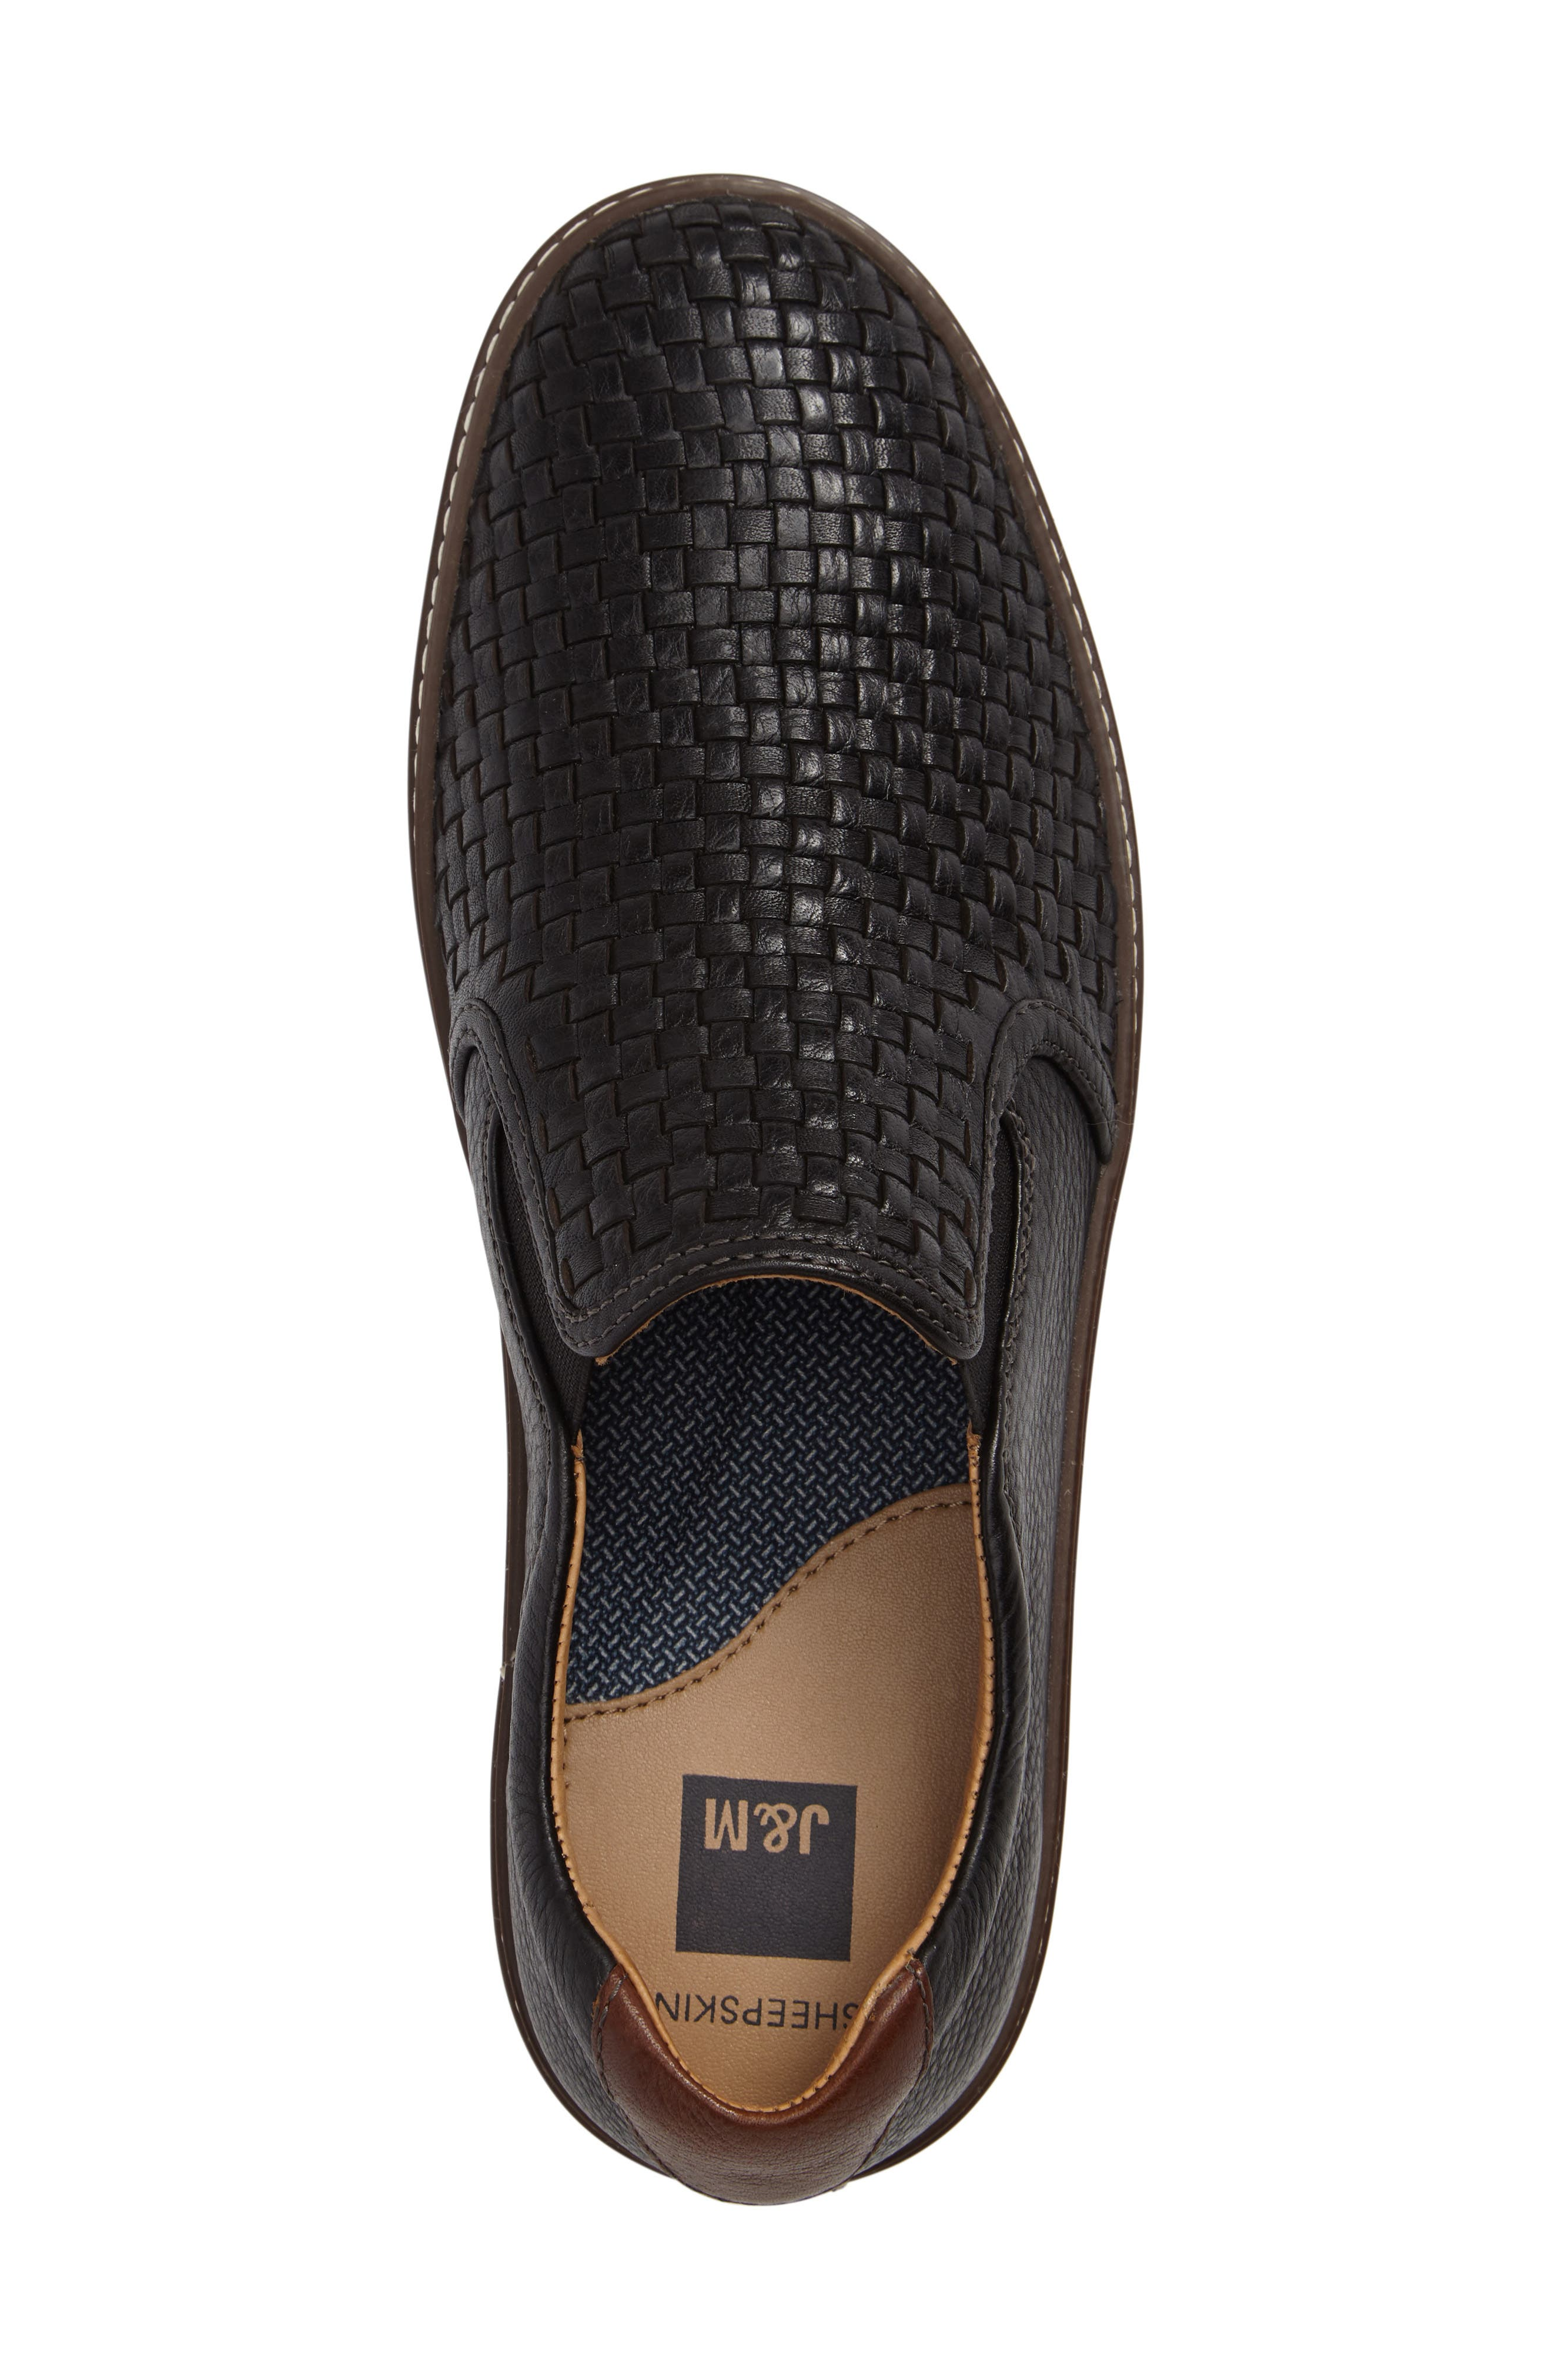 JOHNSTON & MURPHY, McGuffey Woven Slip-On Sneaker, Alternate thumbnail 3, color, BLACK LEATHER